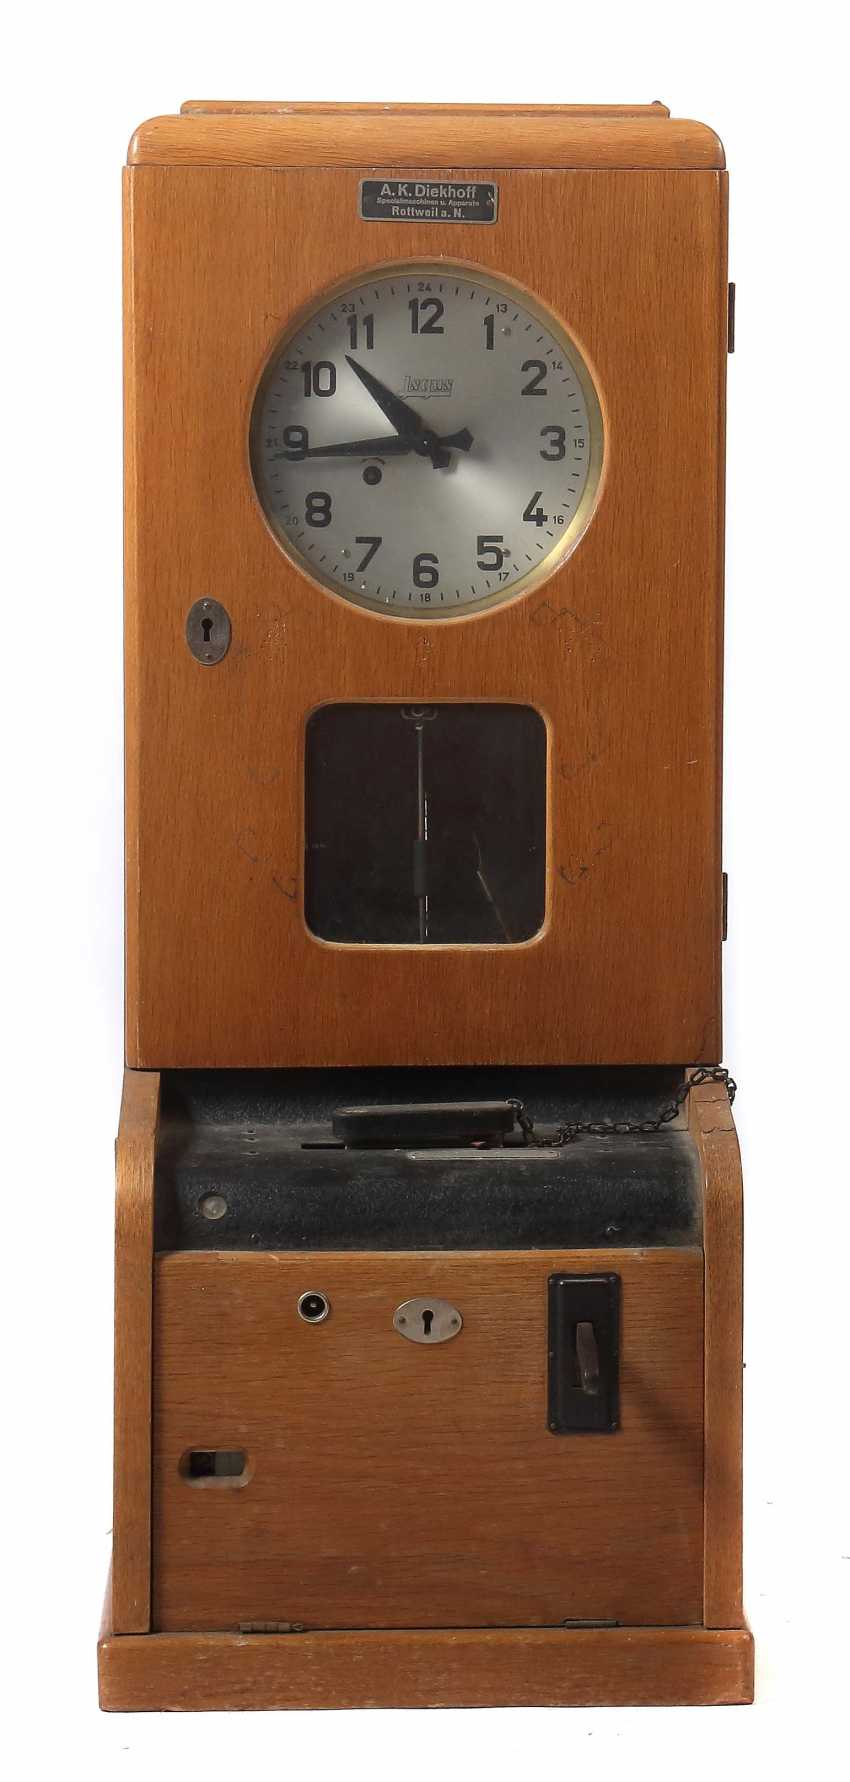 Electric clock with stamp function, probably 1930s - photo 1